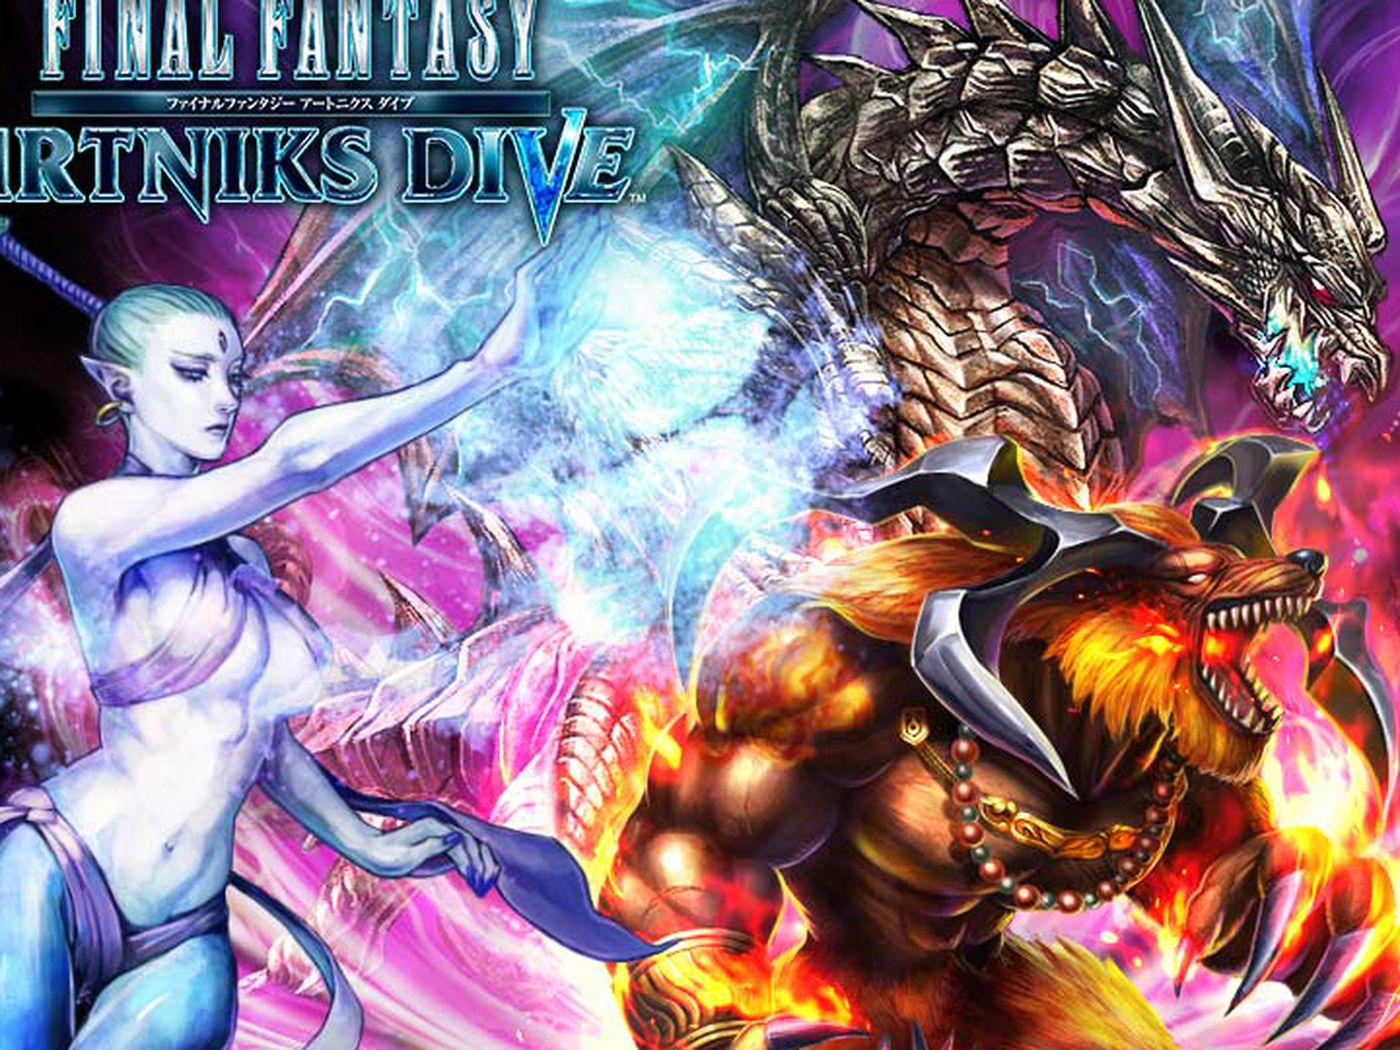 Final Fantasy Artniks Dive is a new free-to-play RPG